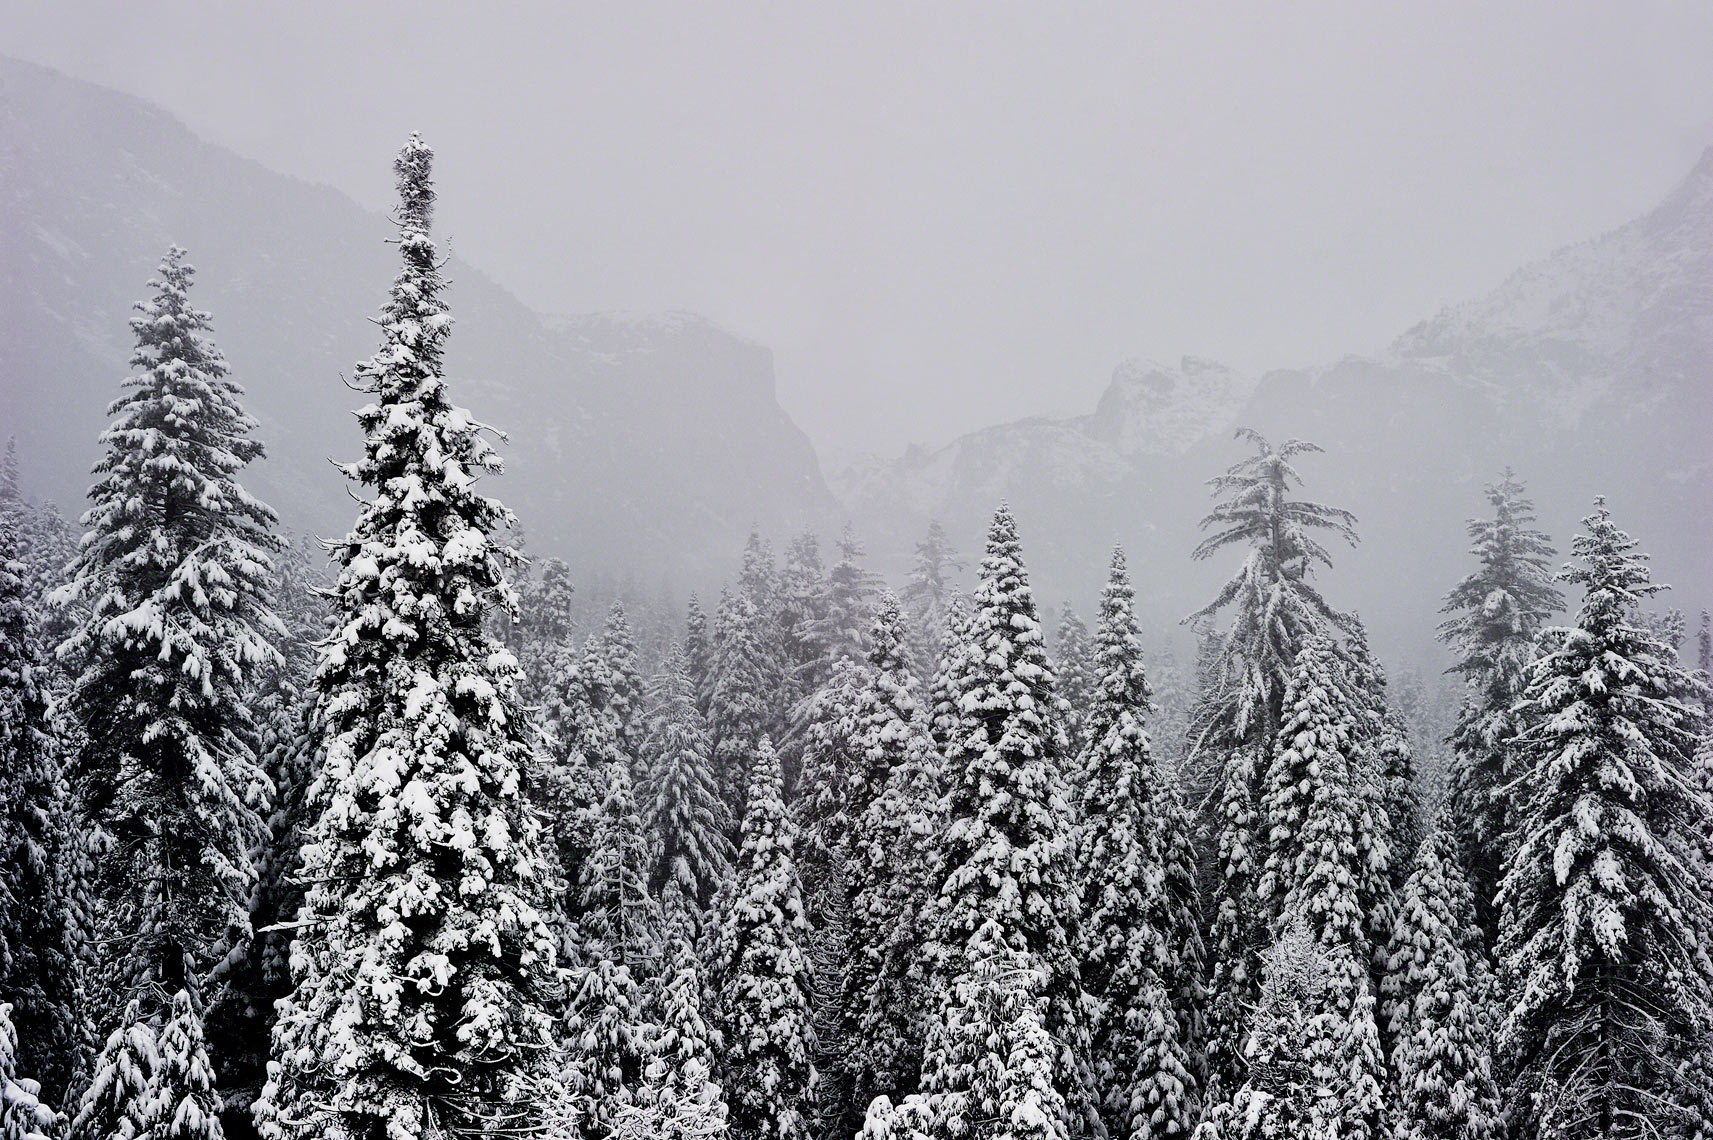 Pine Trees and Yosemite Valley